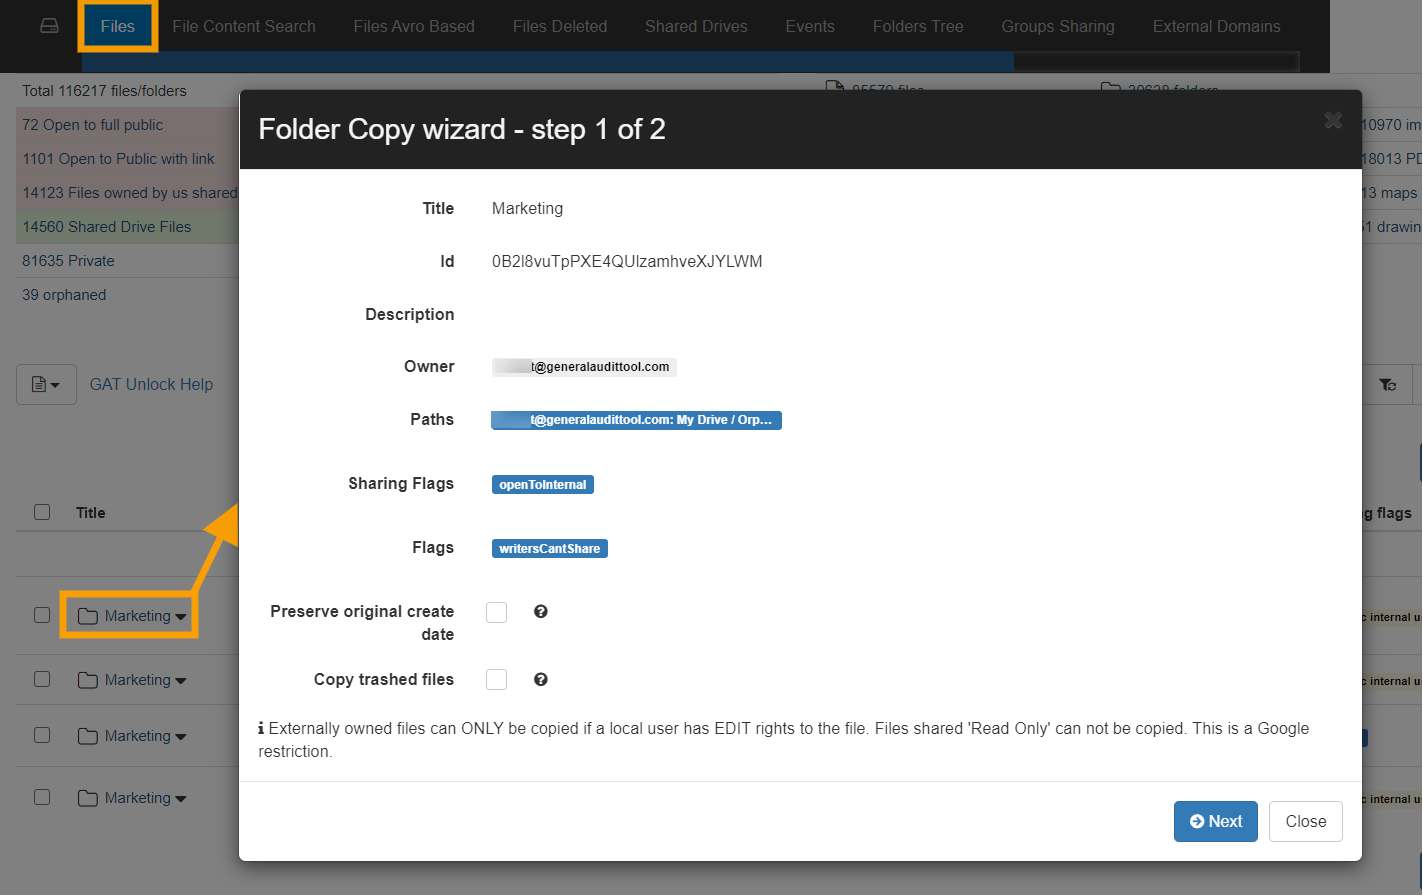 GAT Unlock | Copy Externally Owned Folders and its Content to Your Google Drive (while retaining folders' structure) 3